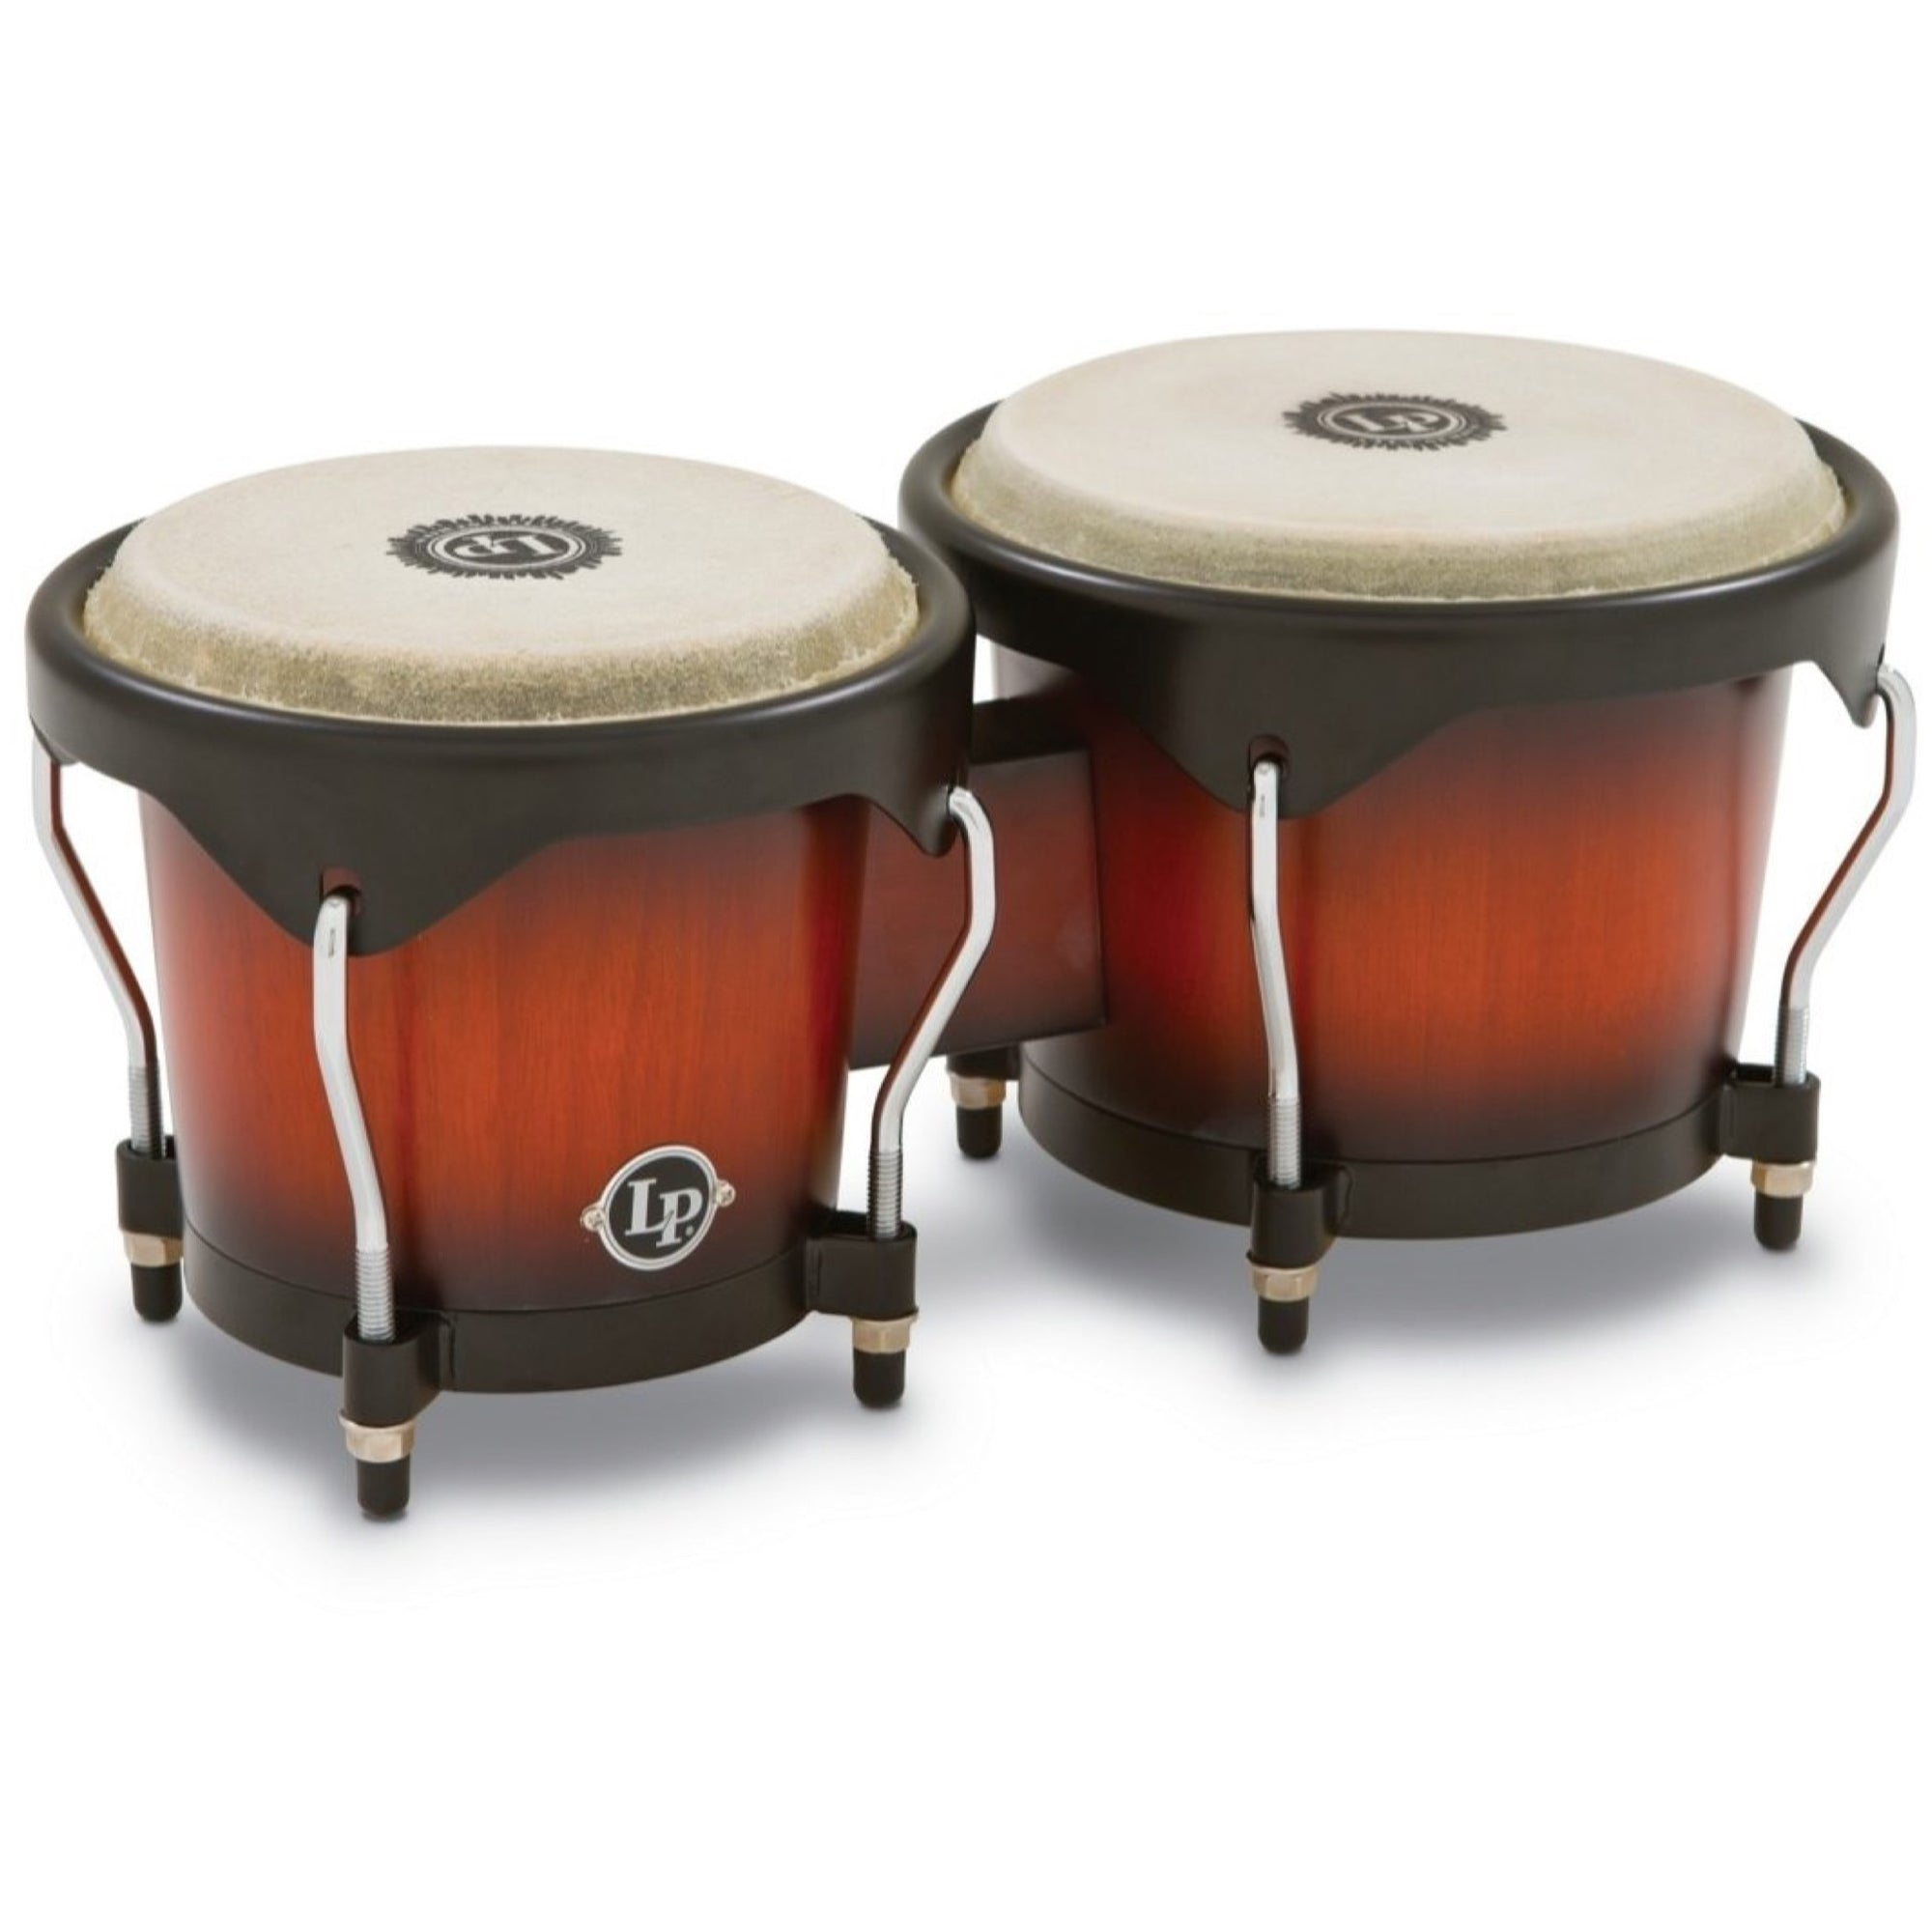 Latin Percussion 601 City Series Bongos, Vintage Sunburst